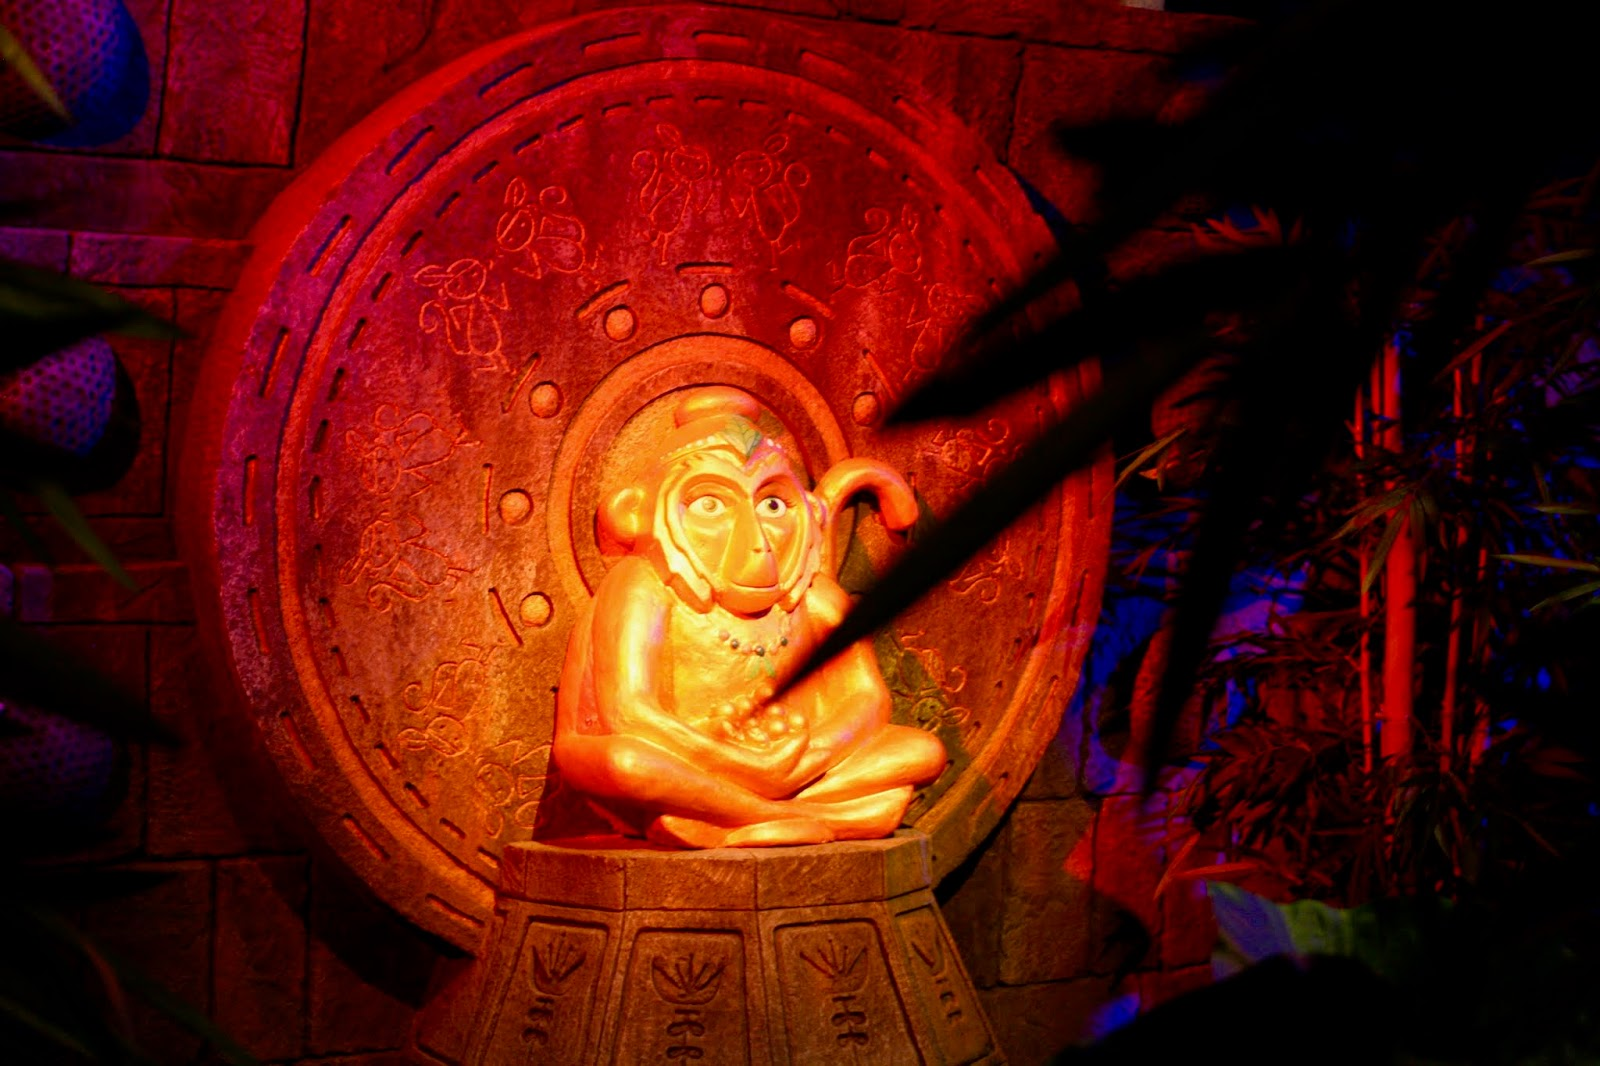 Mabel the Monkey Queen lit up in red lights along the Treetop Adventure Golf course